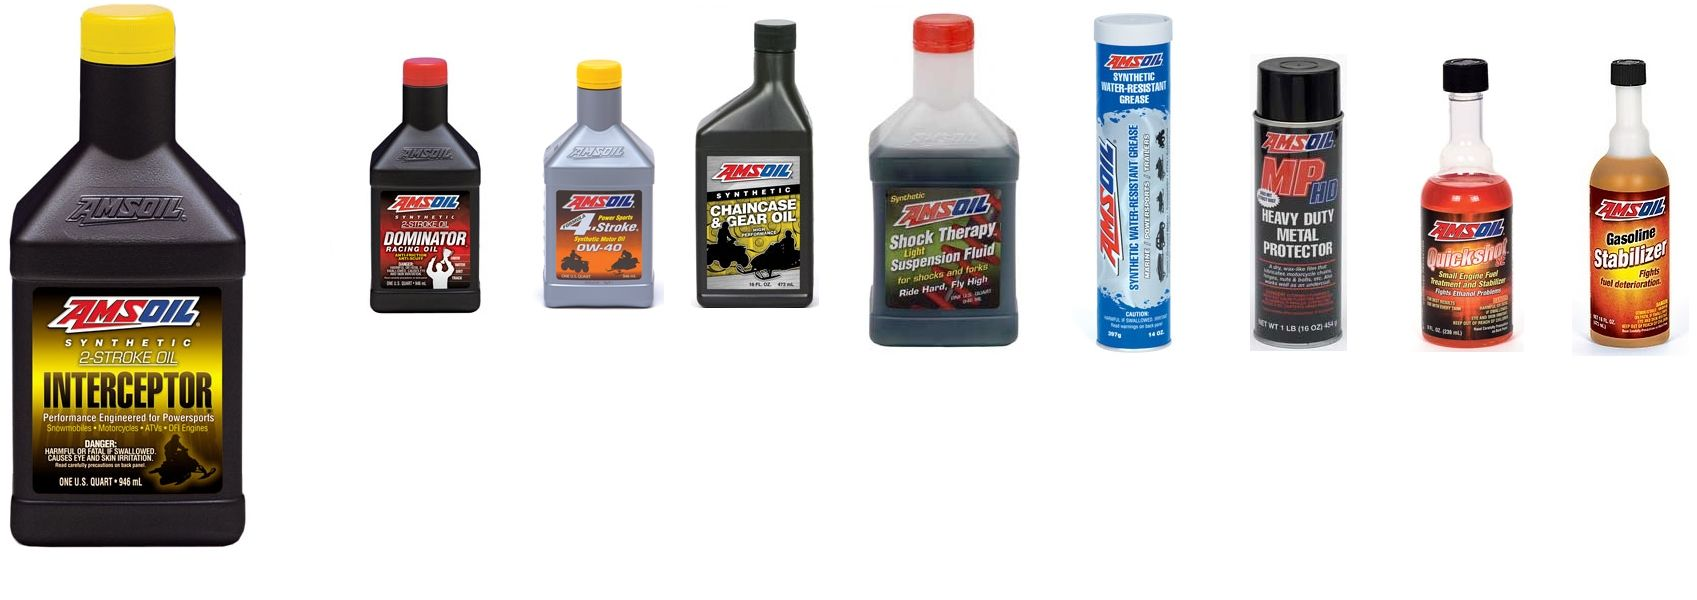 Pin By Haldimand Synthetic Oil On Amsoil Synthetic Oil For